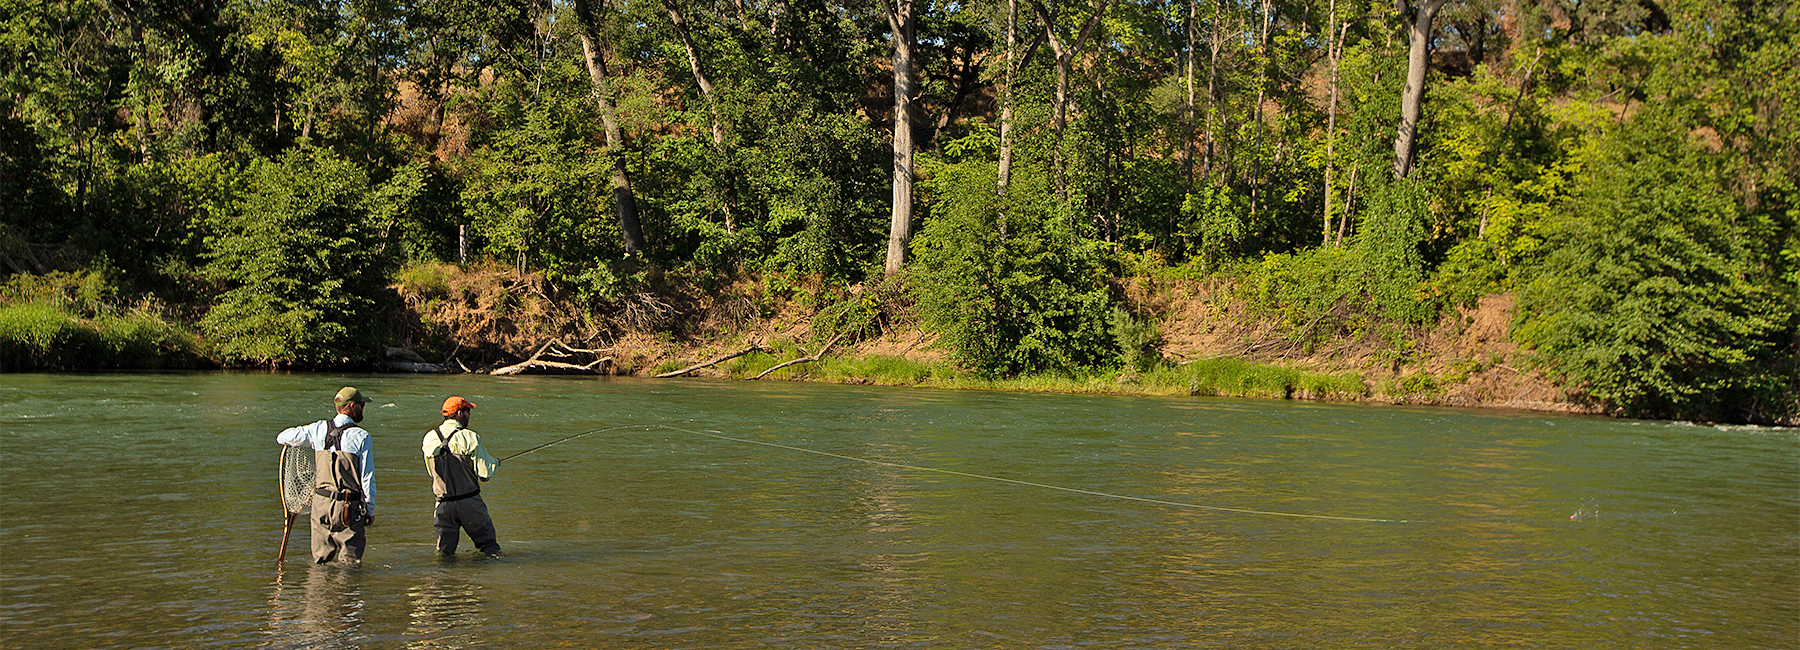 8 Reasons to Hire a Guide for Your Next Fly Fishing Trip